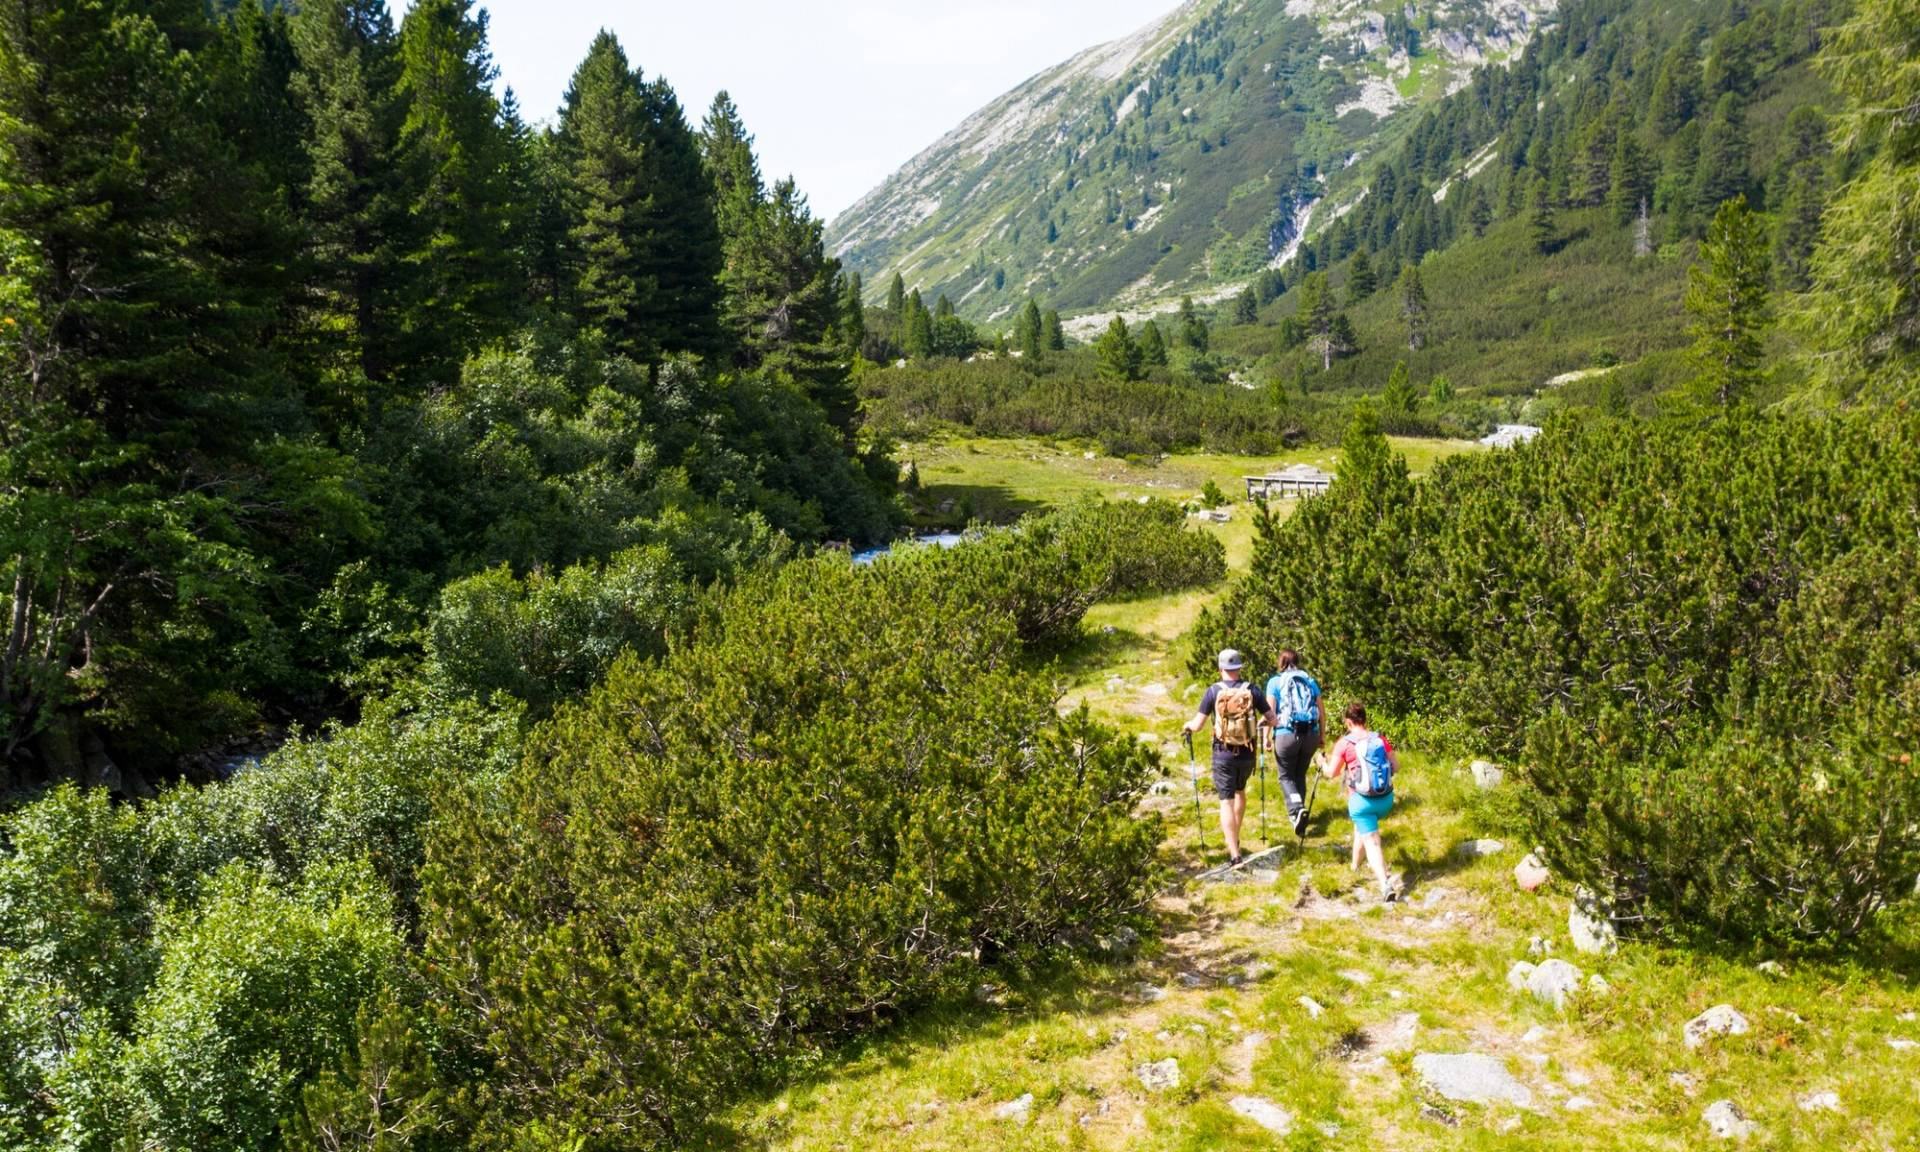 Persons hiking in the nature park